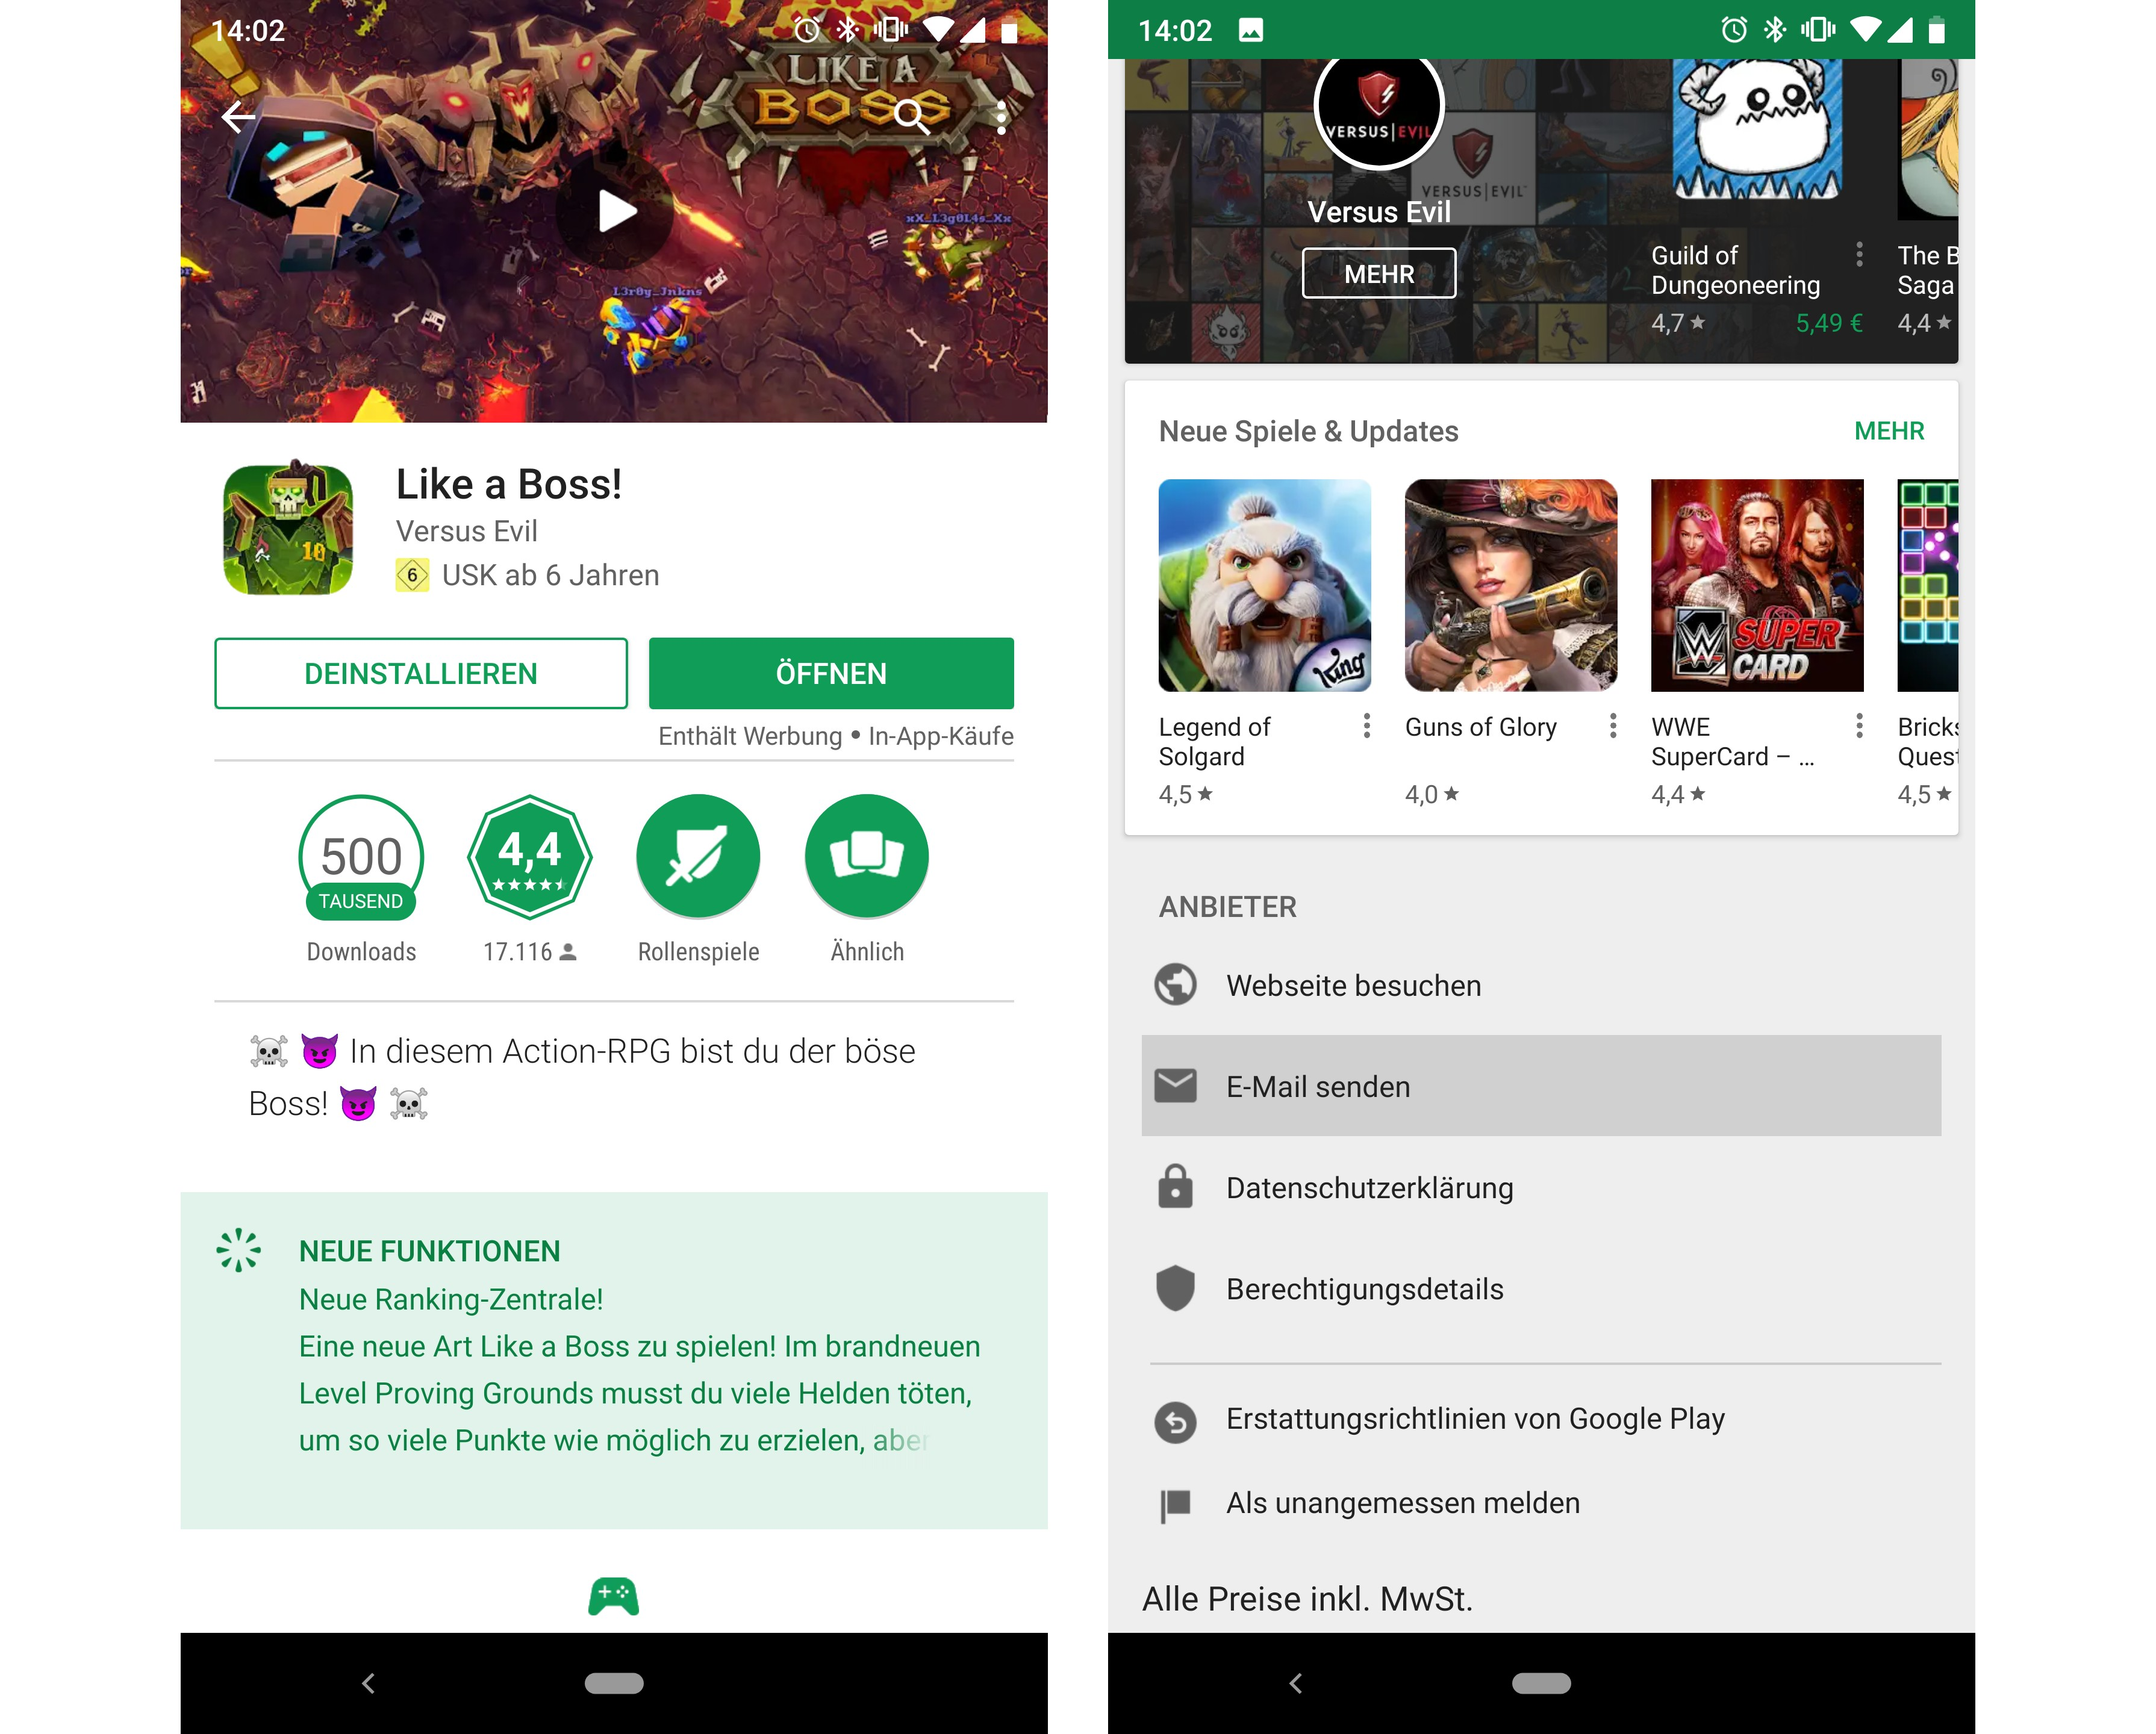 App stürzt ab android